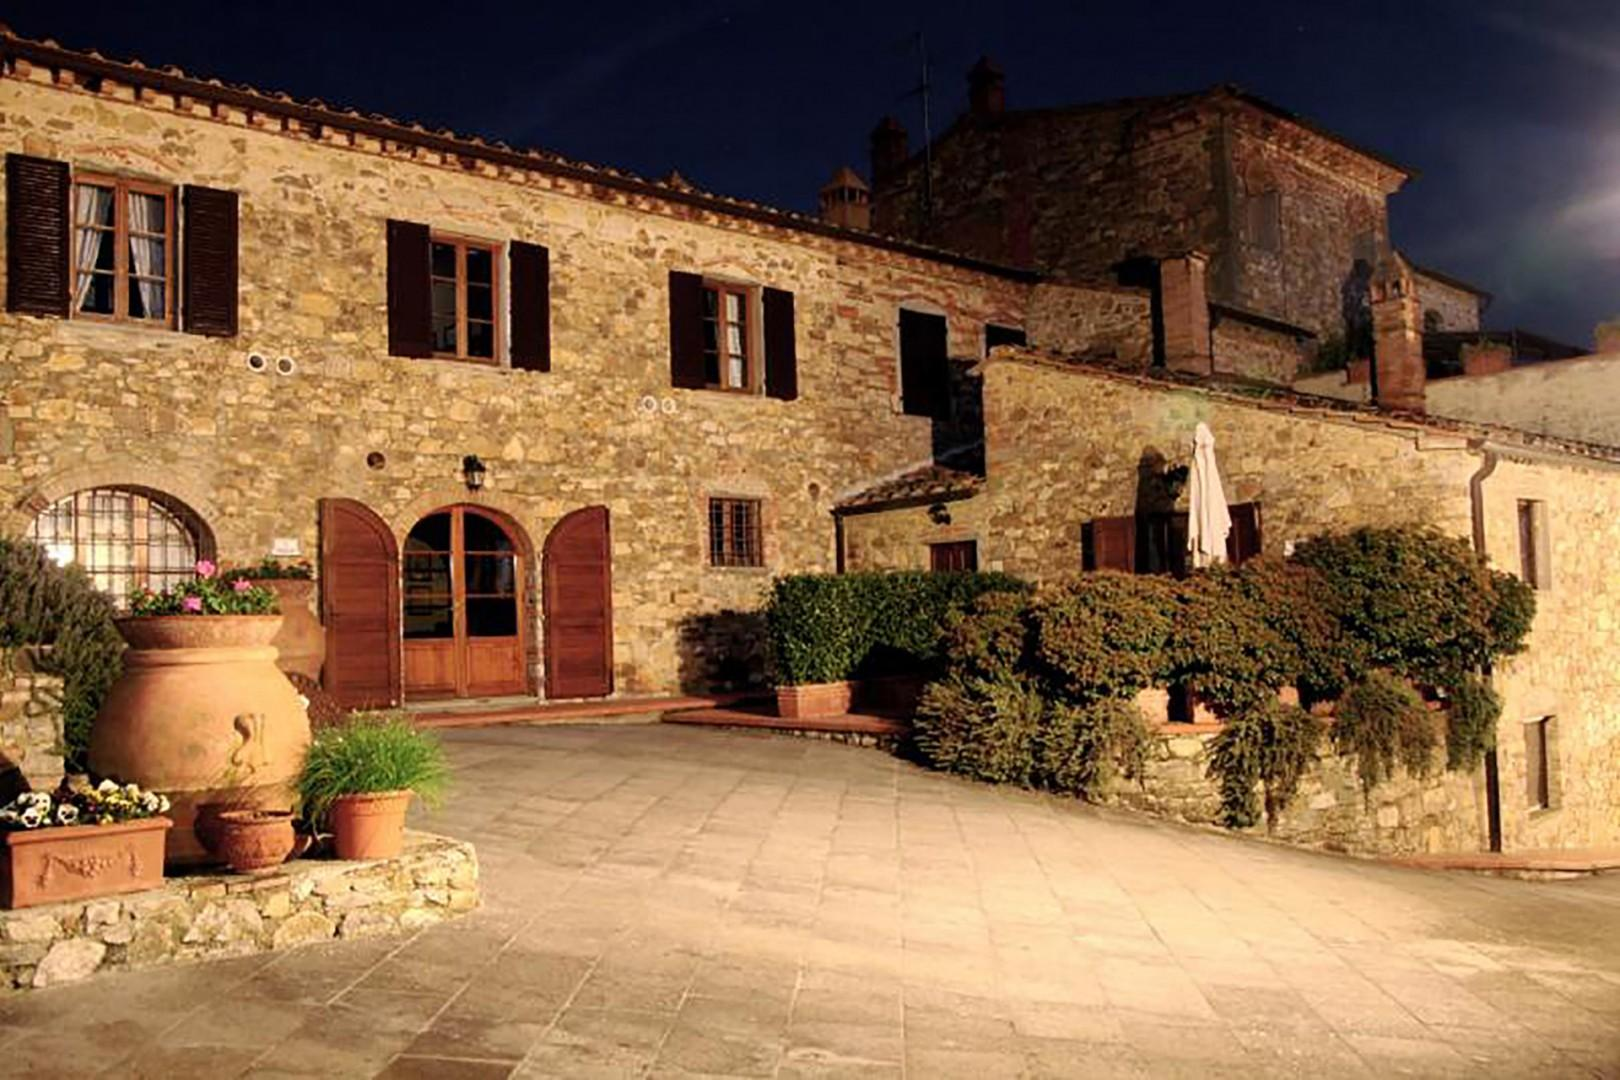 Evening view of the entrance of the Poggio apartment.